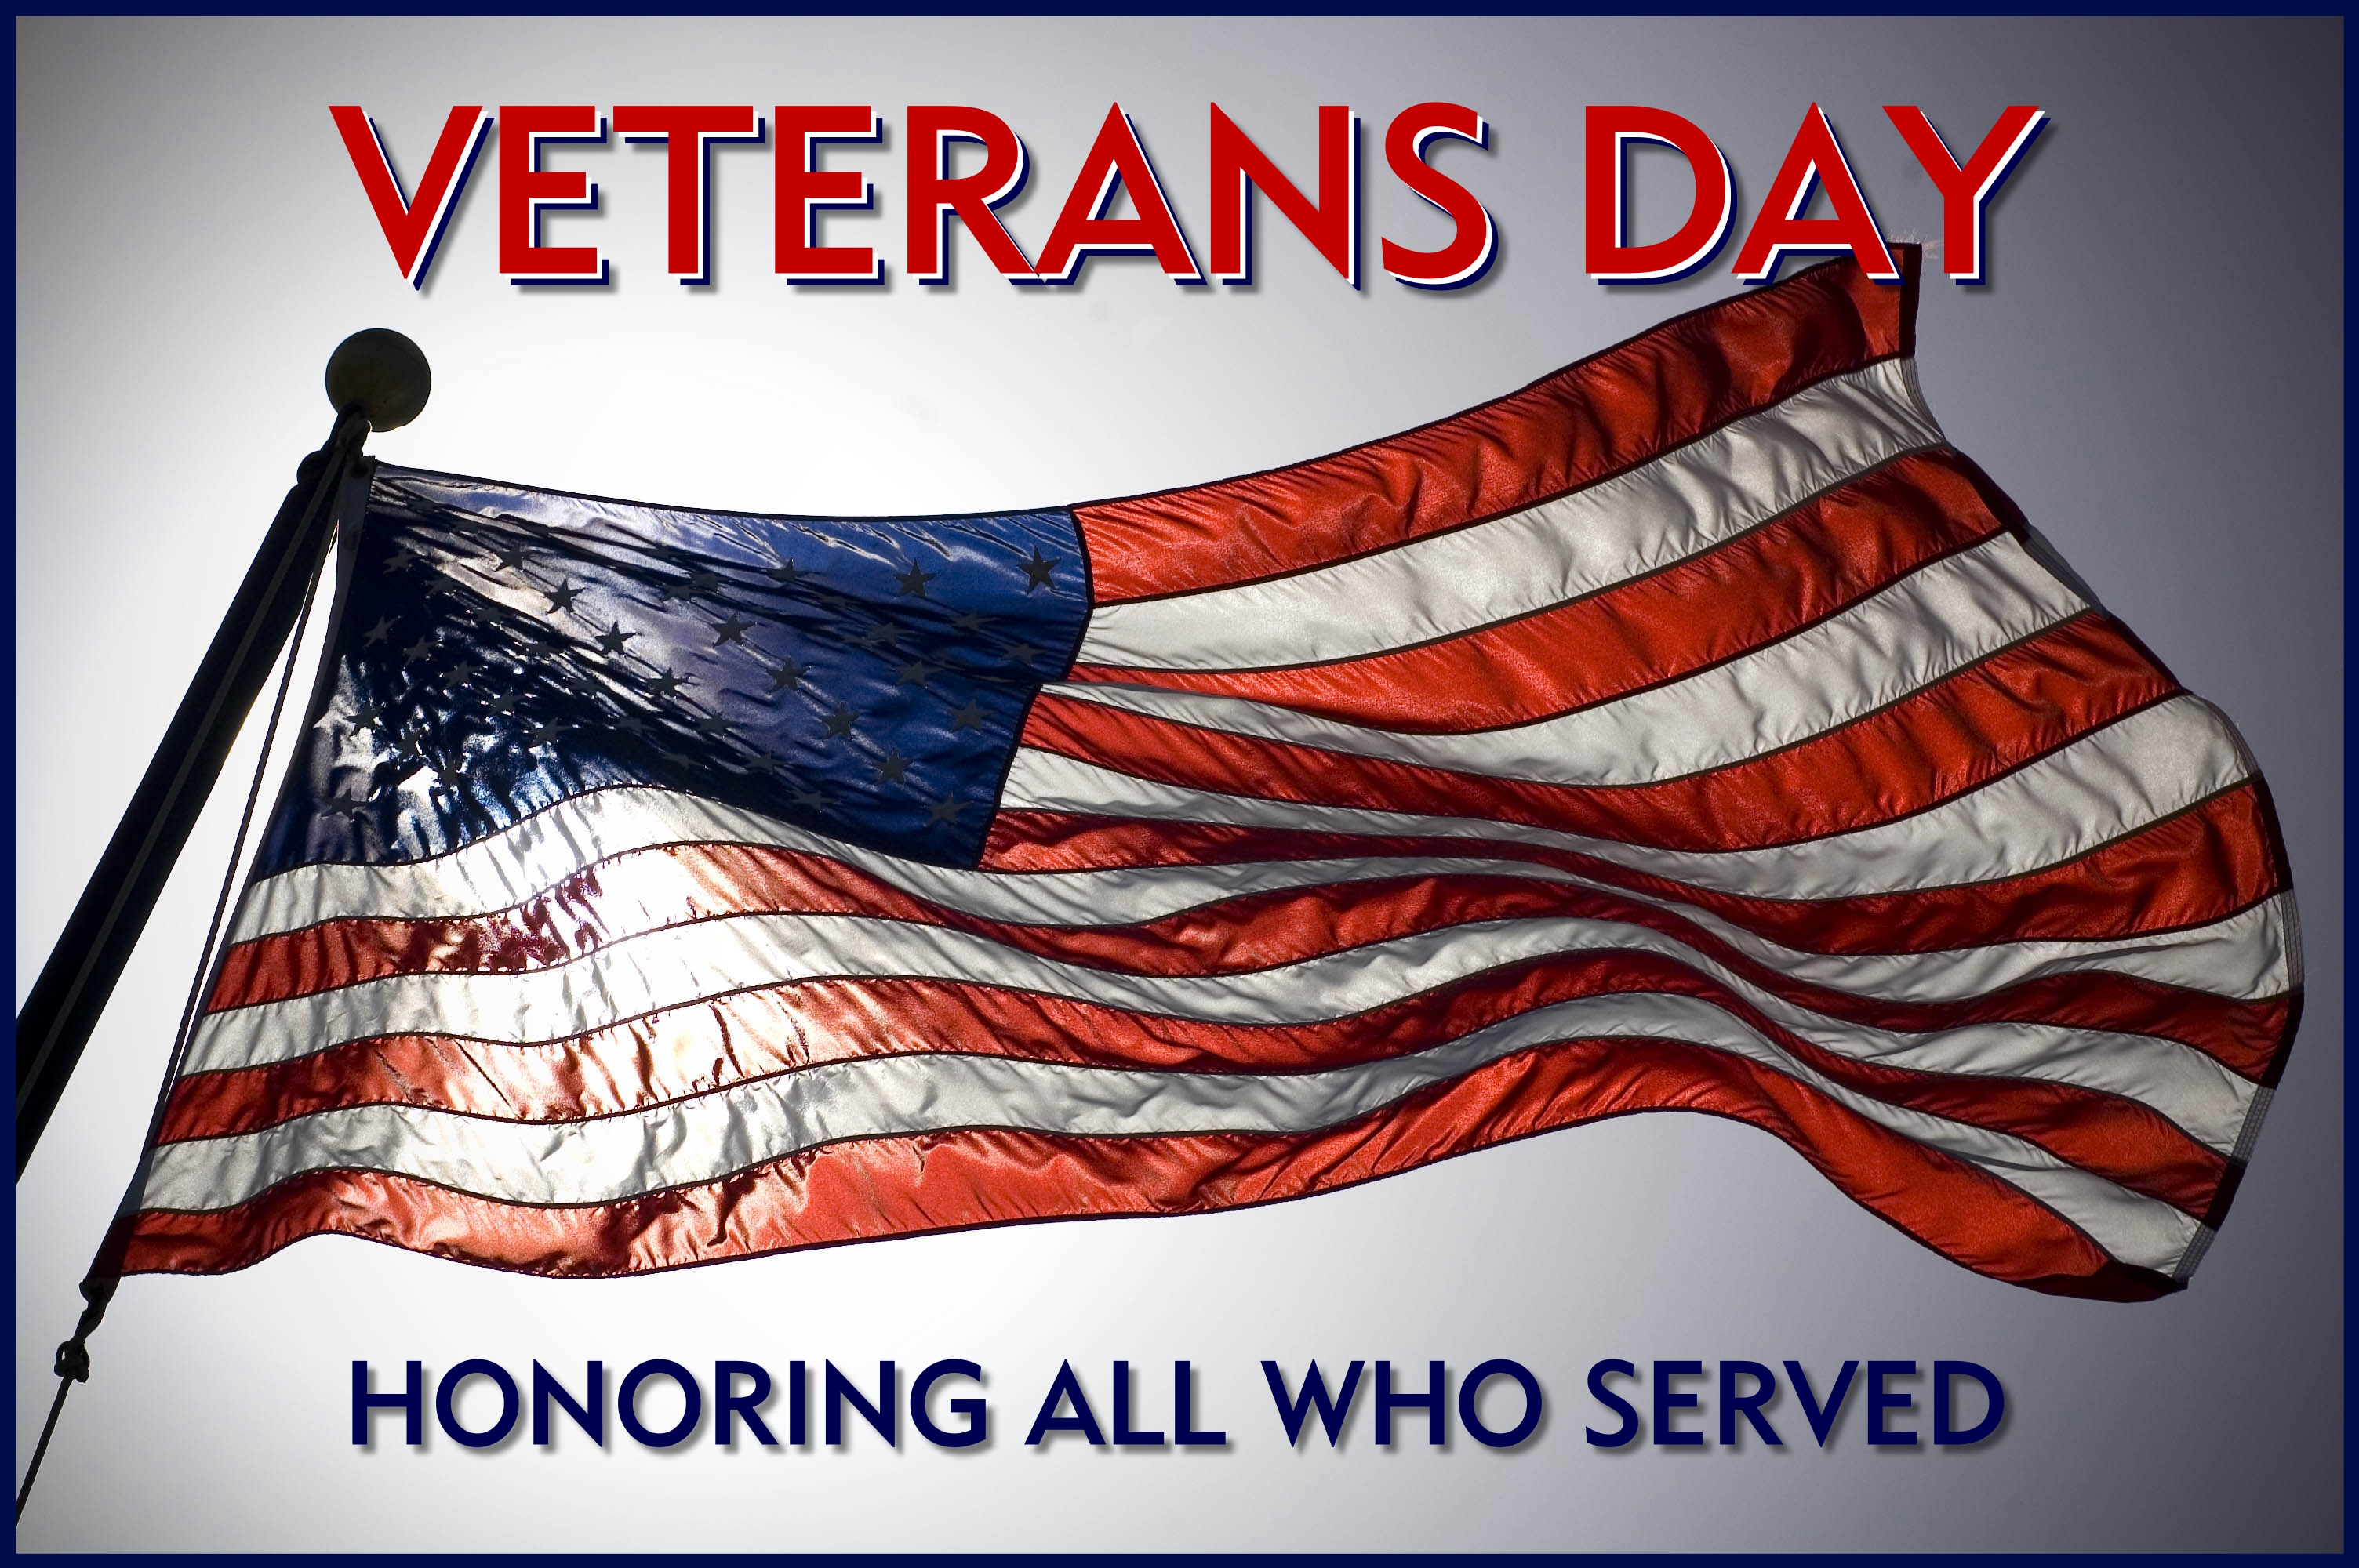 Veterans Day USA Wishes Greeting